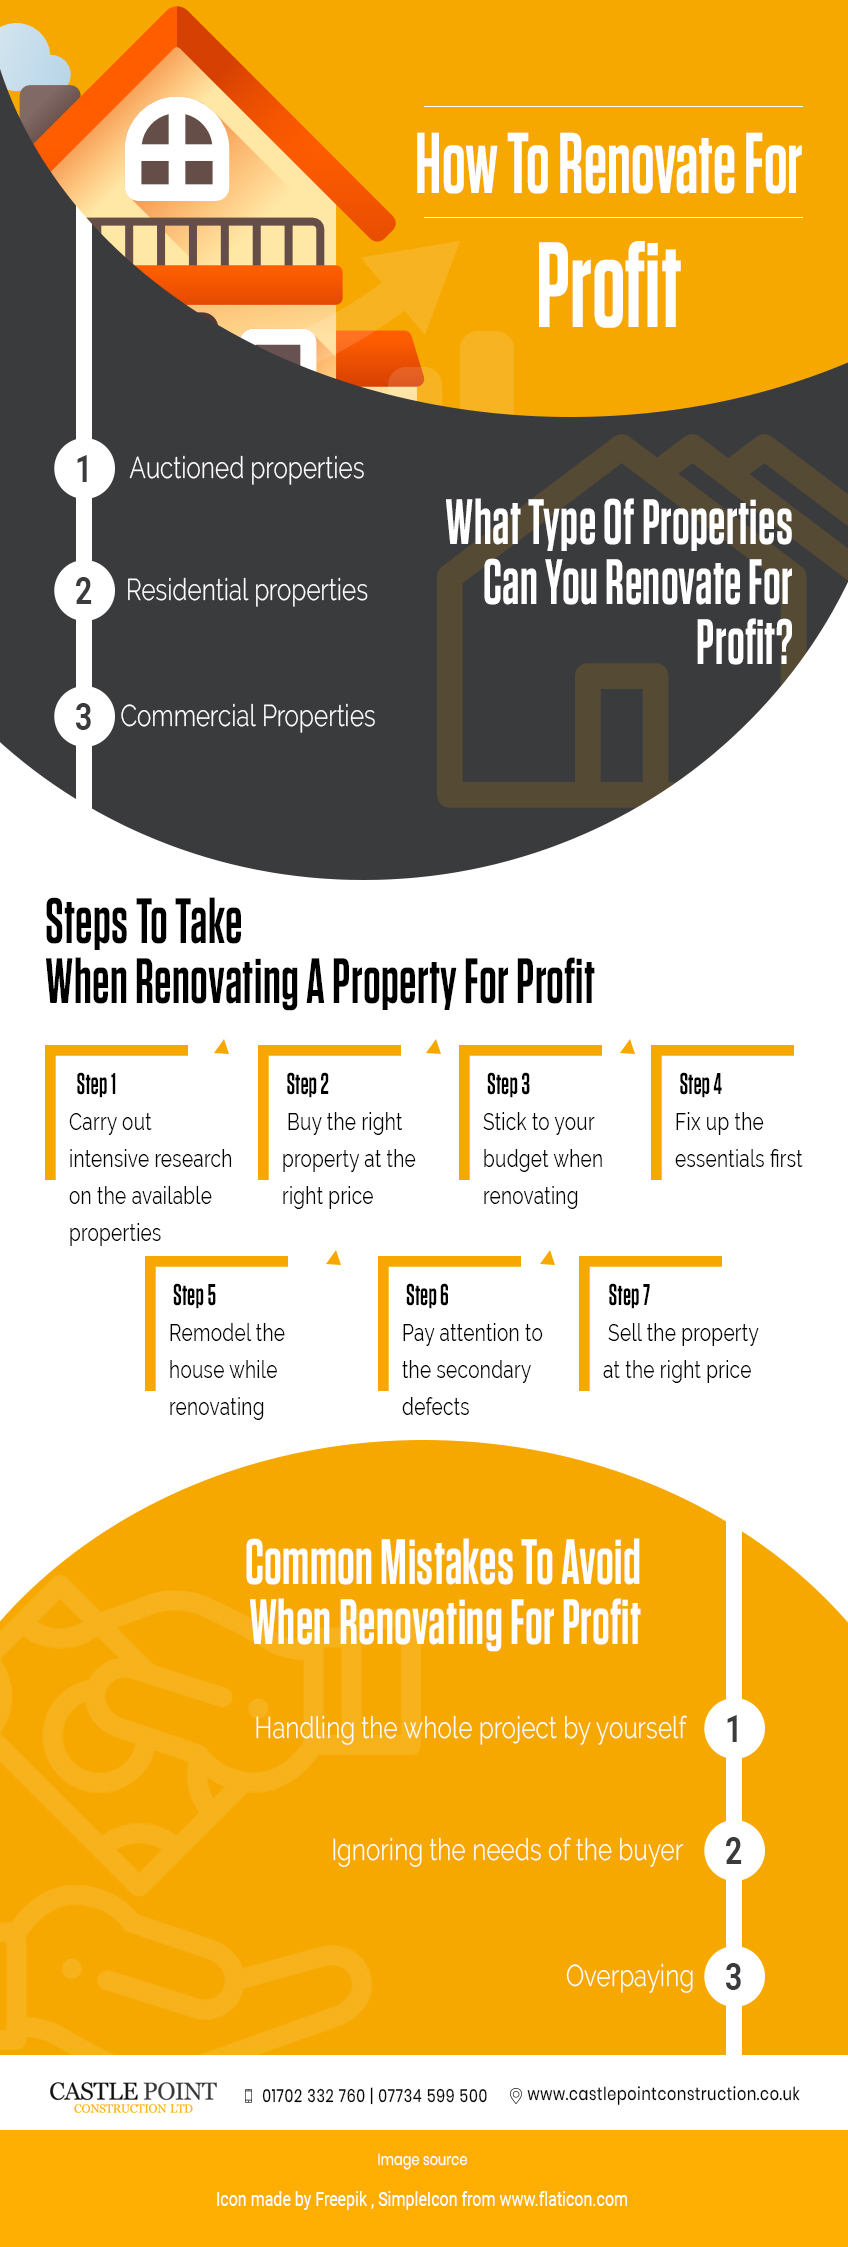 How-To-Renovate-For-Profit infographic